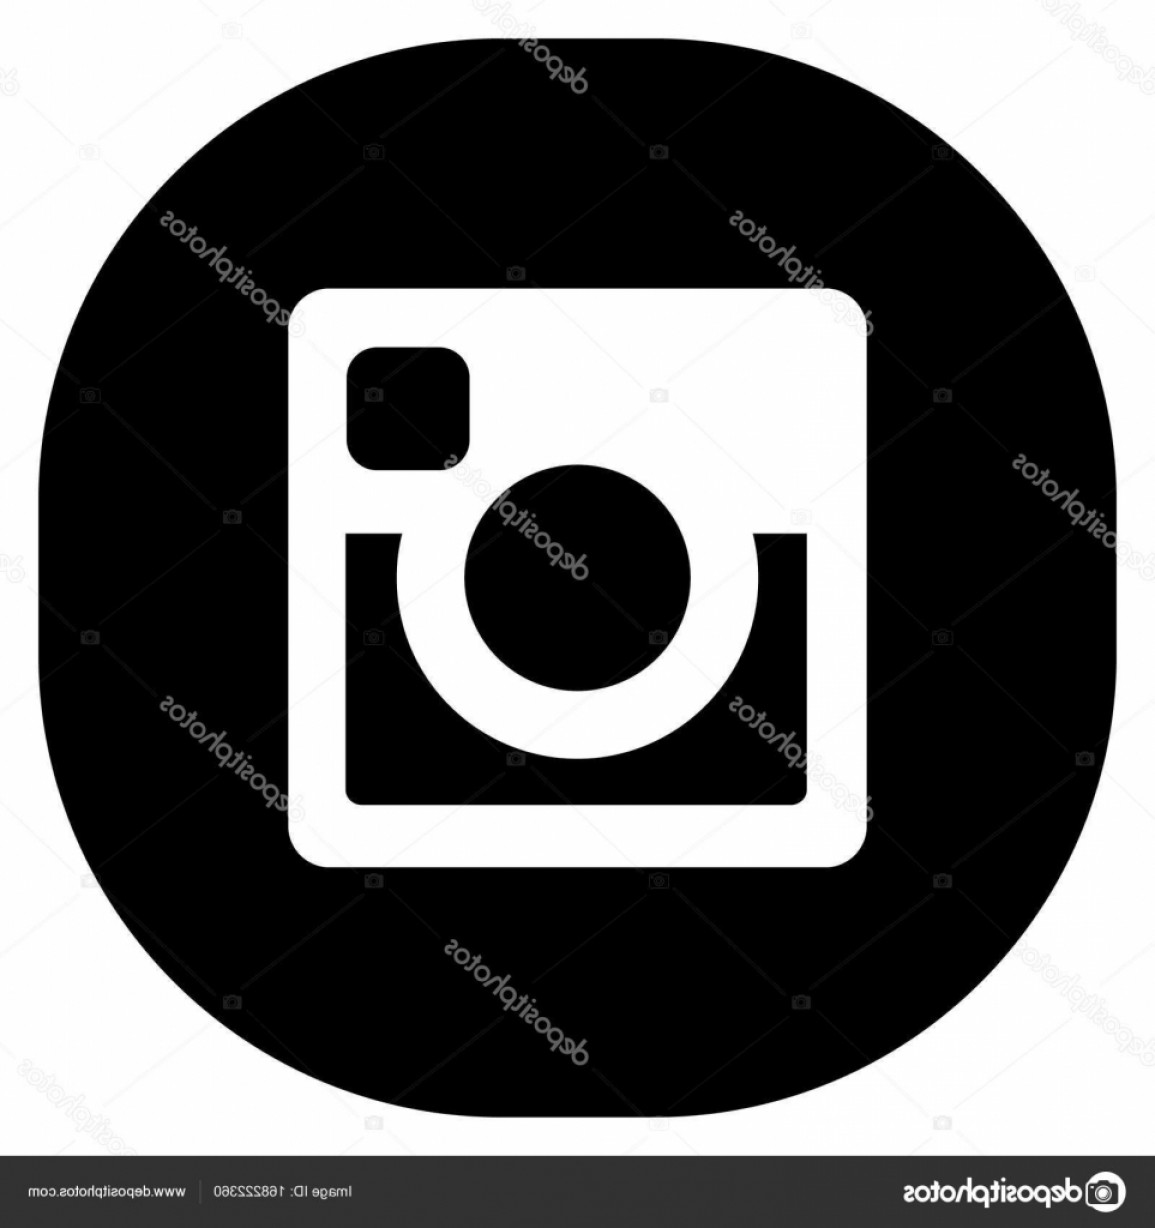 Official Instagram Icon Vector: Stock Illustration Original Black Round Square Web